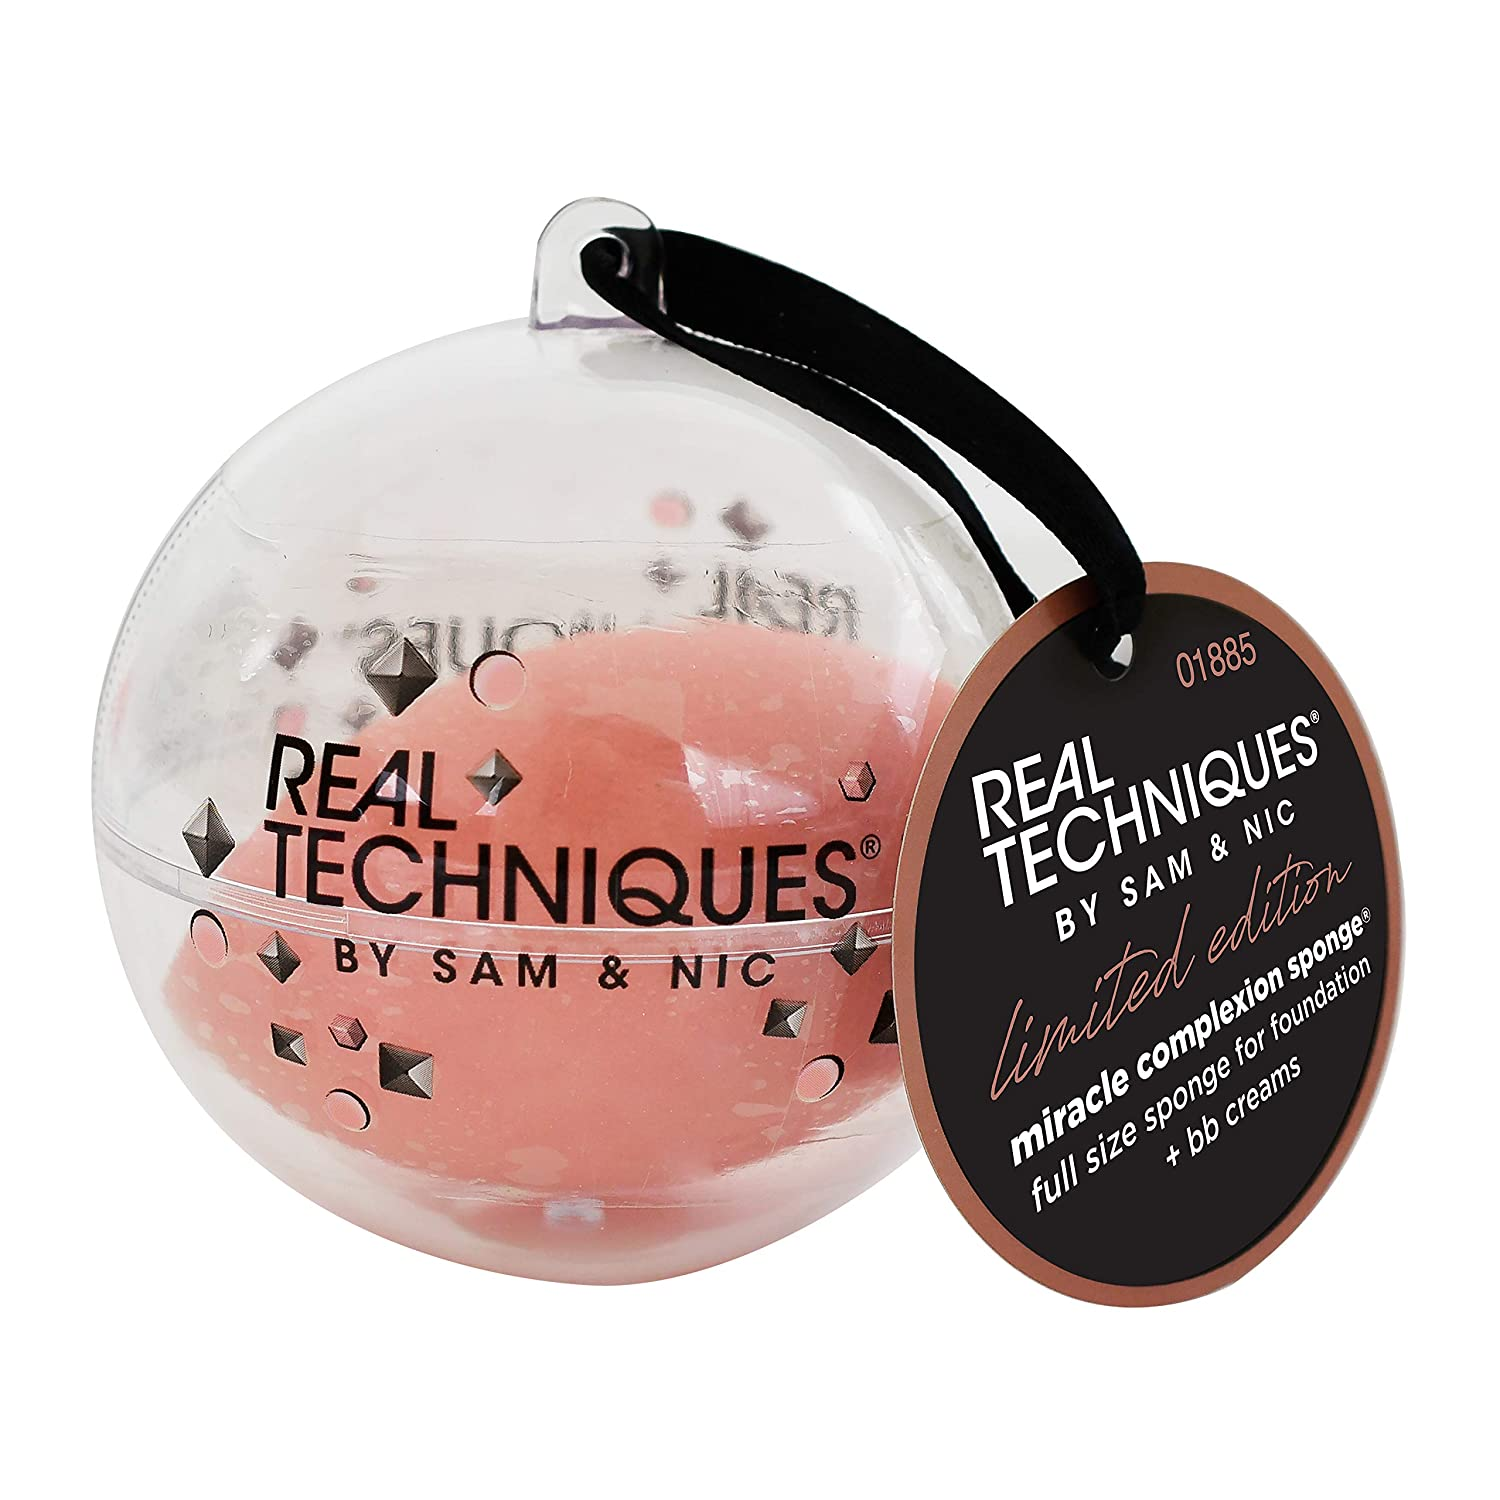 Real Techniques Holiday 2019 limited edition, miracle complexion sponge ornament